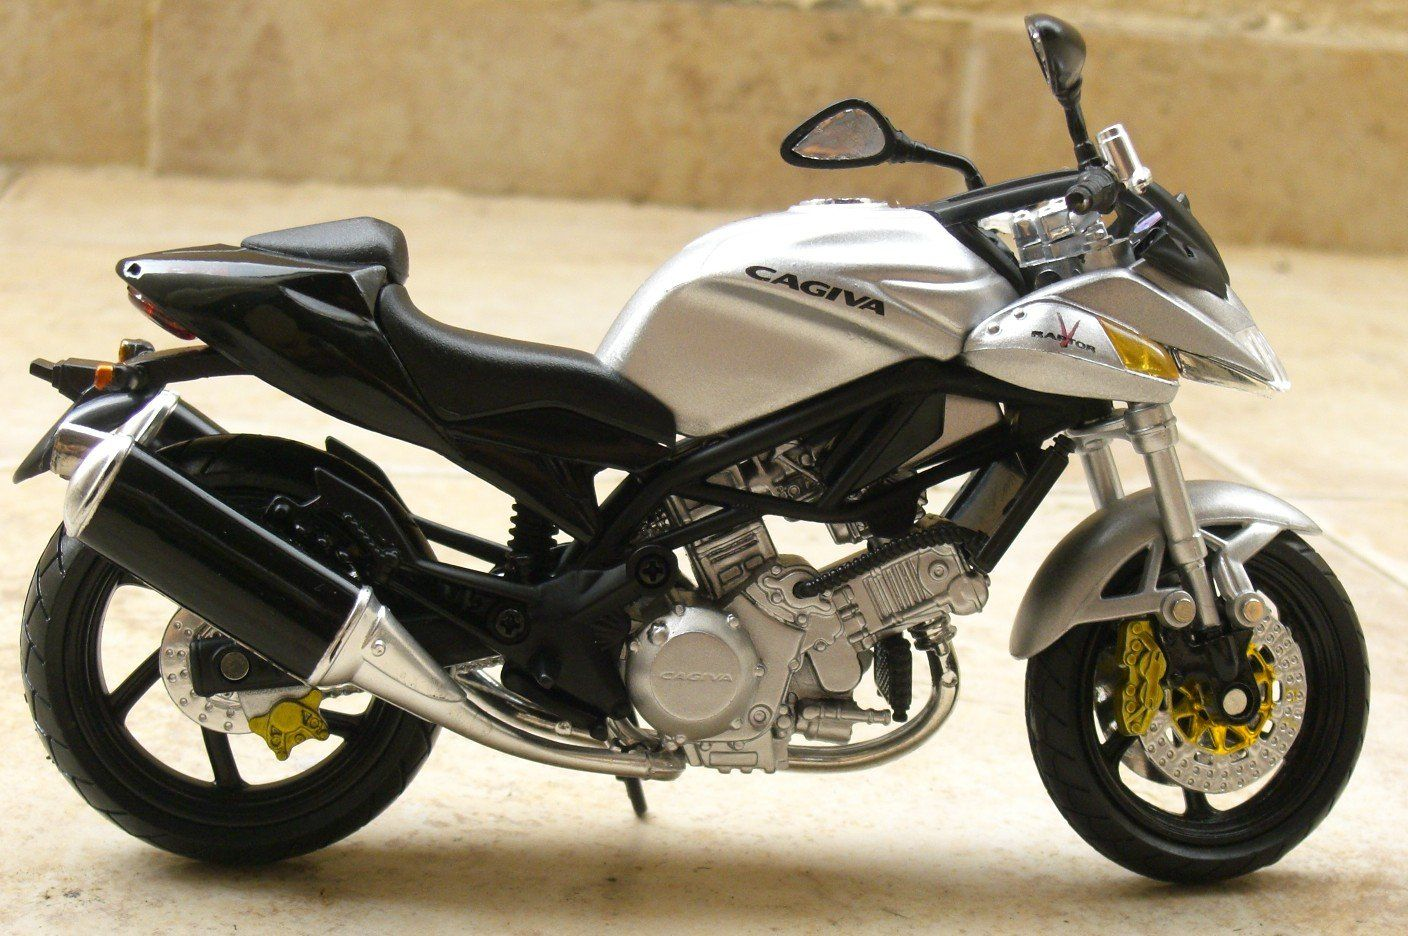 V Raptor 1000 Motorcycle Manufacturers, Motorcycle Engine, Motorbikes,  Twin, Motorcycles, Dreams